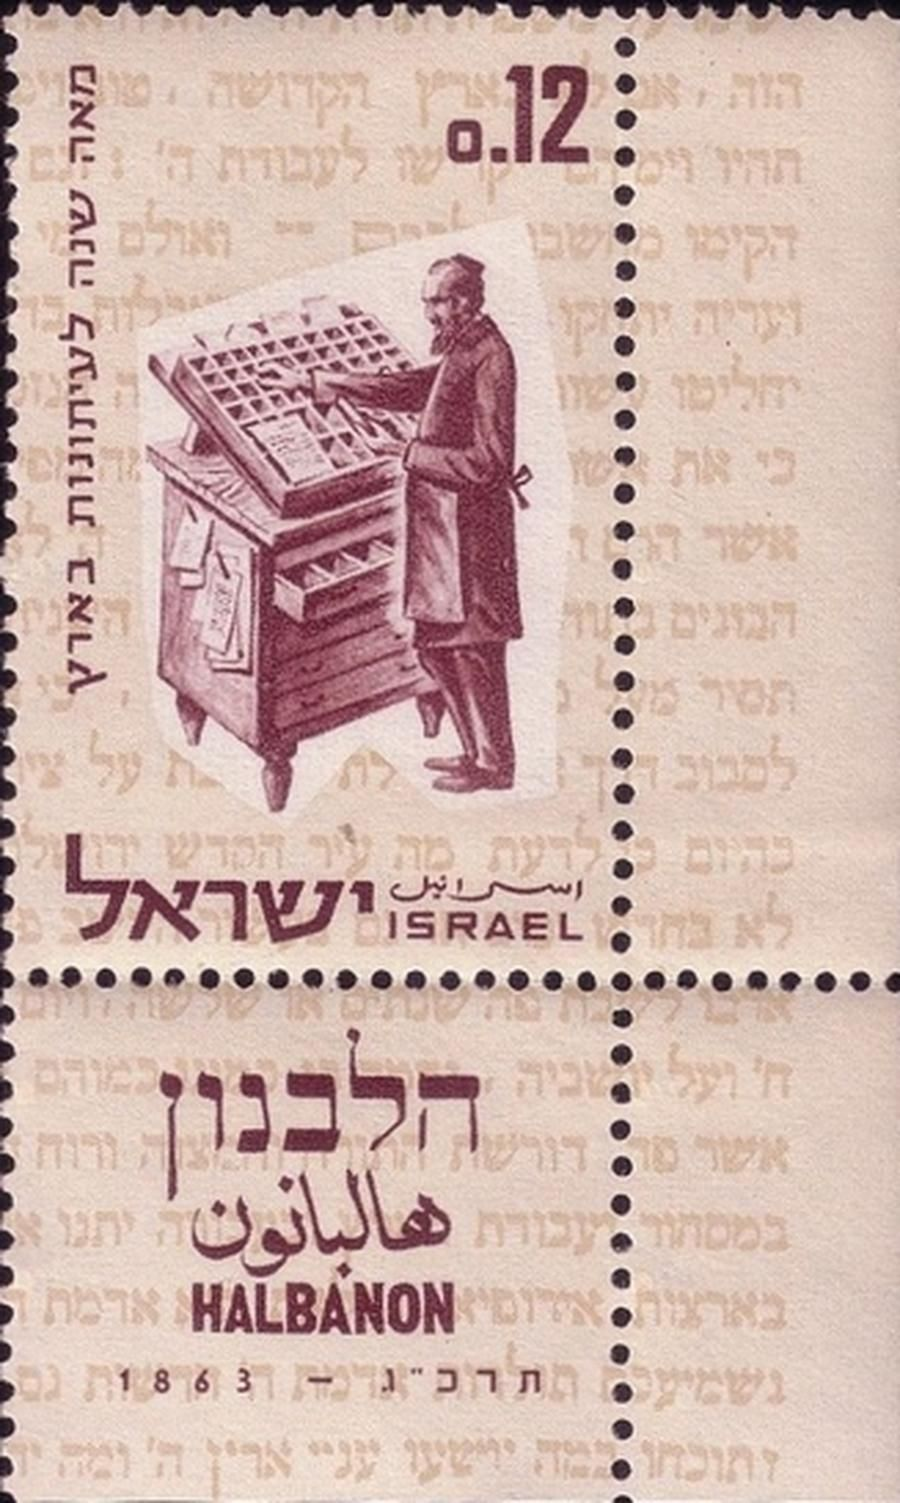 Postage stamp comemorating 100th Anniversary of HaLebanon magazine, the first Hebrew periodical published in Israel, designed by Otte Wallisch (http://en.wikipedia.org/wiki/Otte_Wallish).